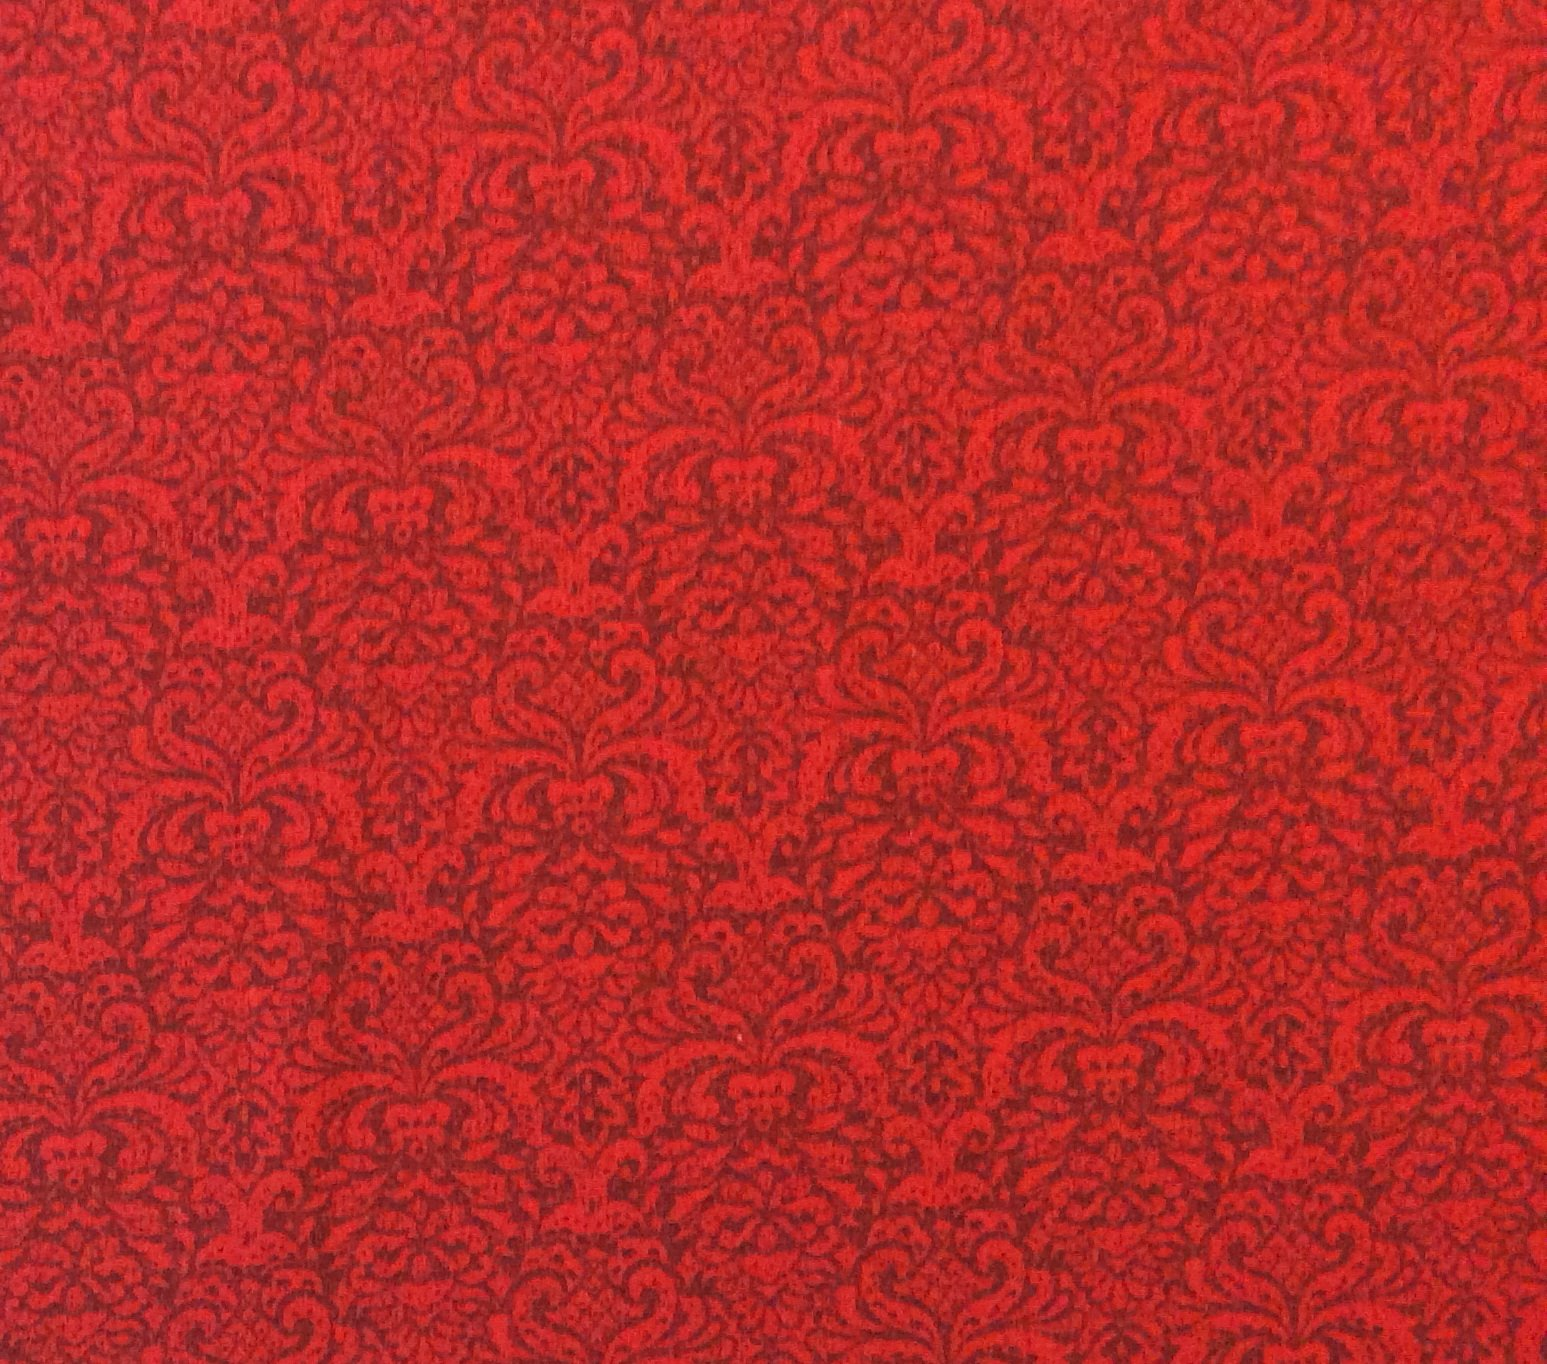 Md231 crimson damask holiday christmas pattern elegant for Cotton quilting fabric